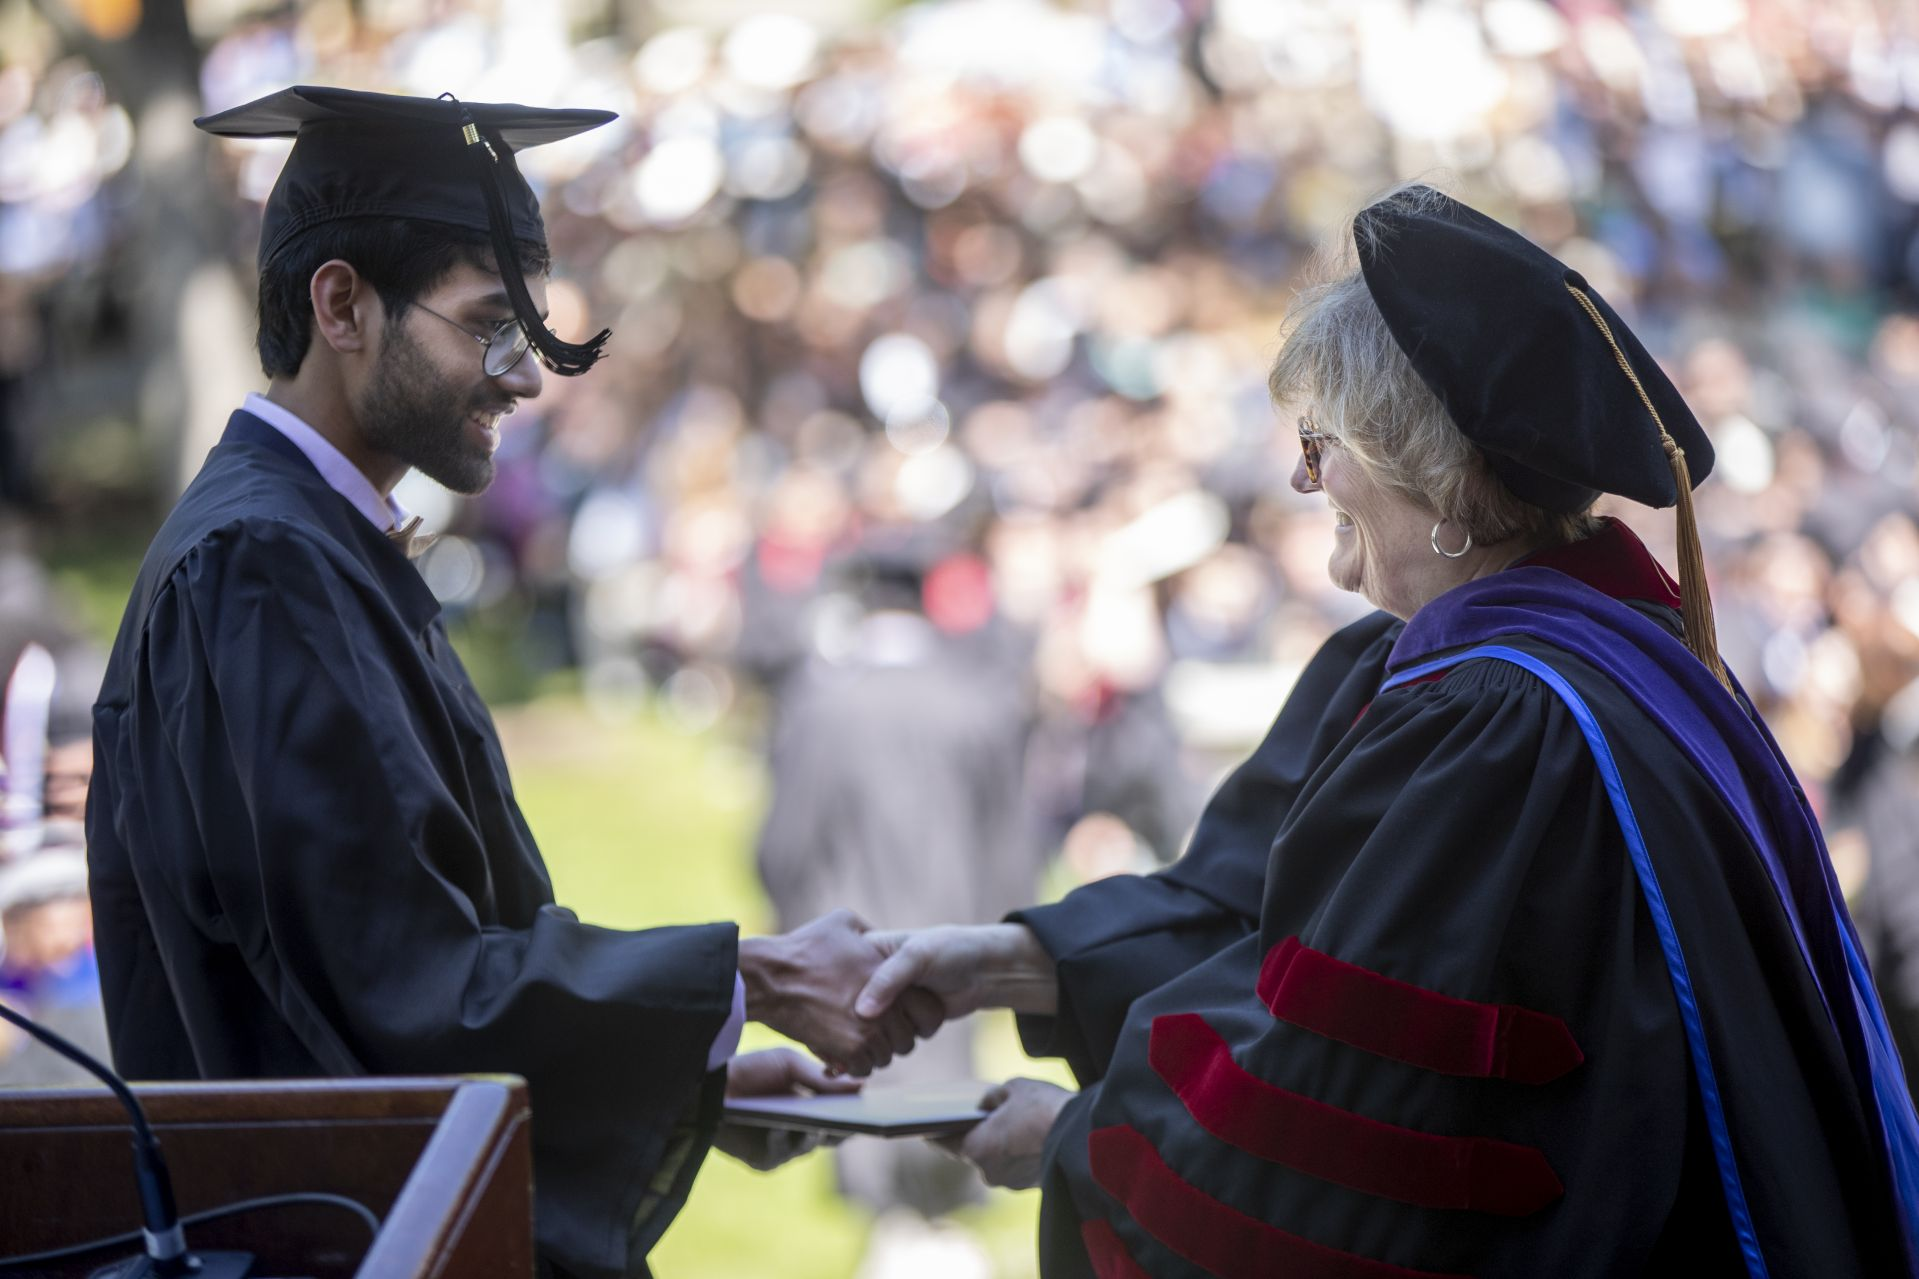 Rohan Bhat, a double major in philosophy and in classical and medieval studies, accepts his diploma from President Clayton Spencer. (Phyllis Graber Jensen/Bates College)